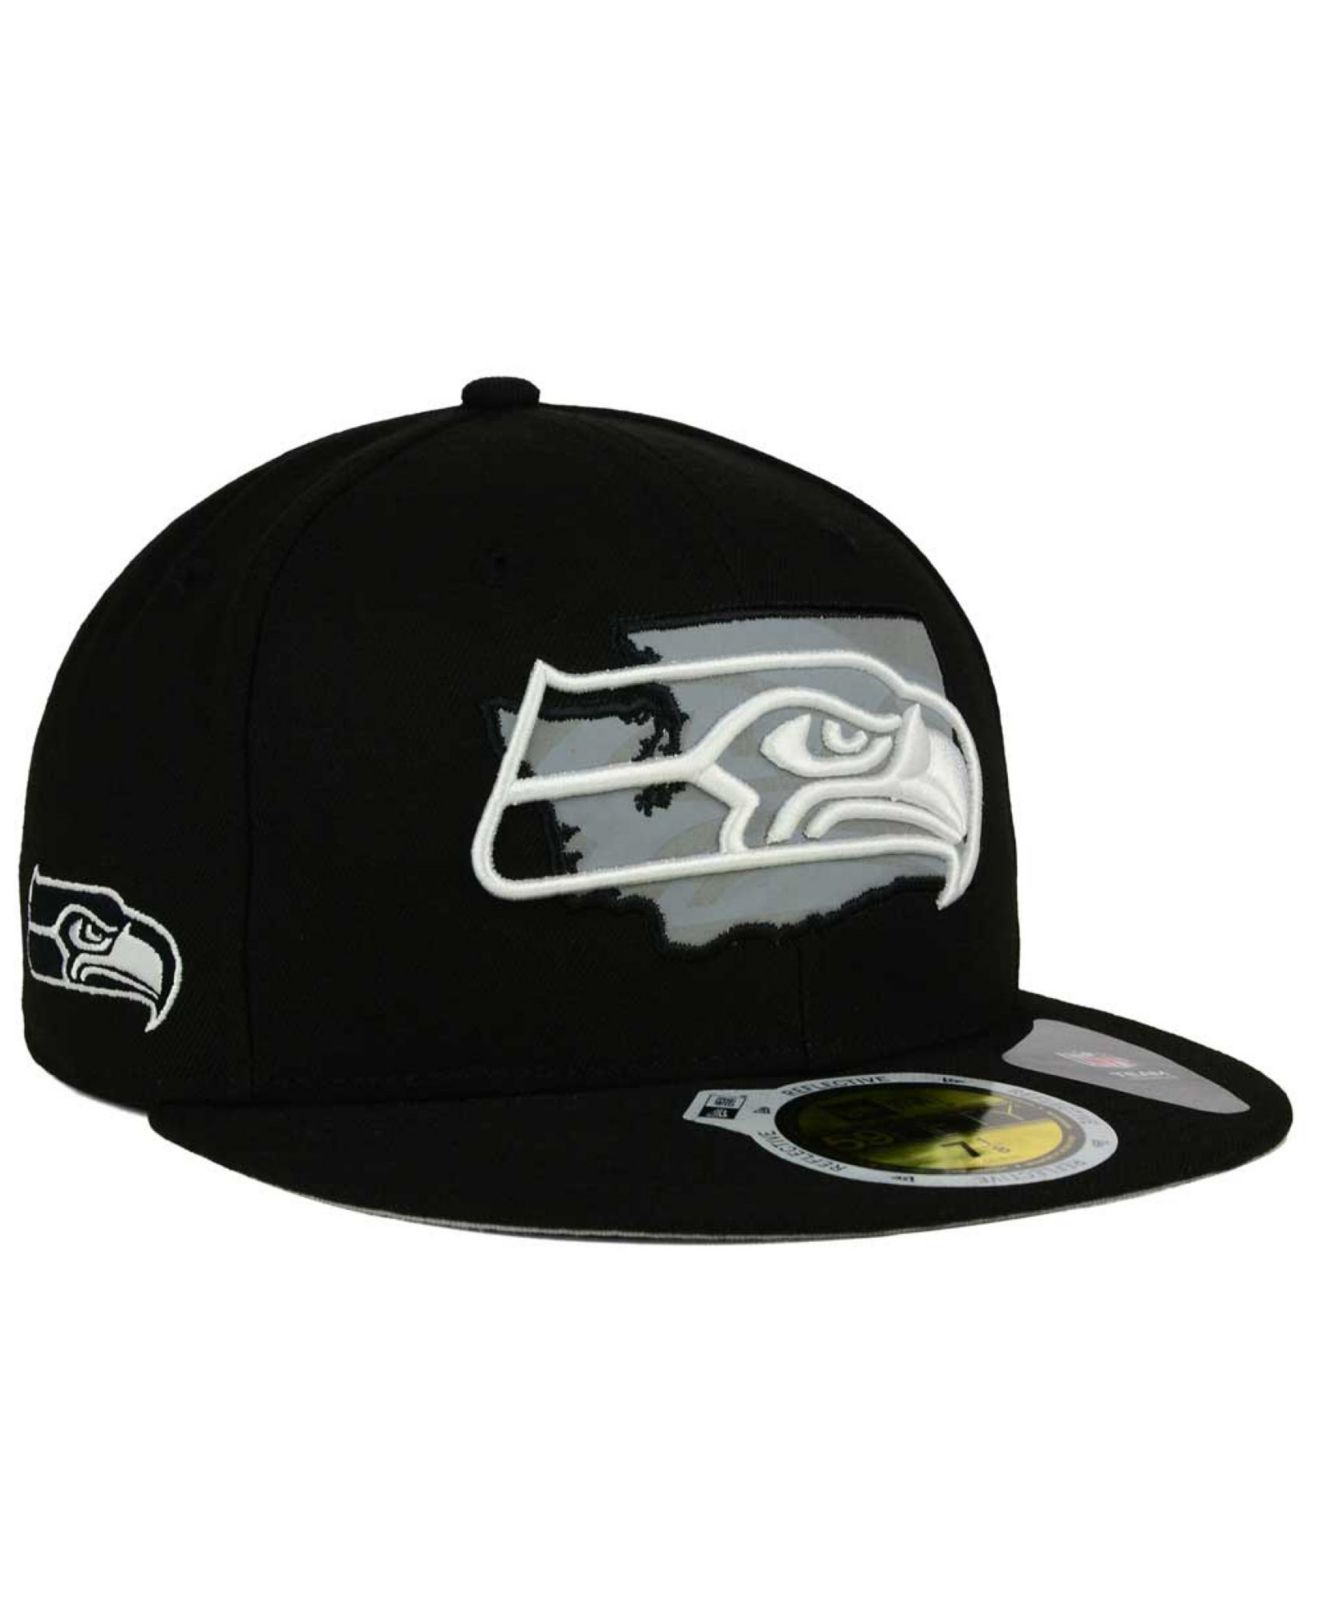 333c5d34b84 Lyst - KTZ Seattle Seahawks State Flective Redux 59fifty Cap in ...